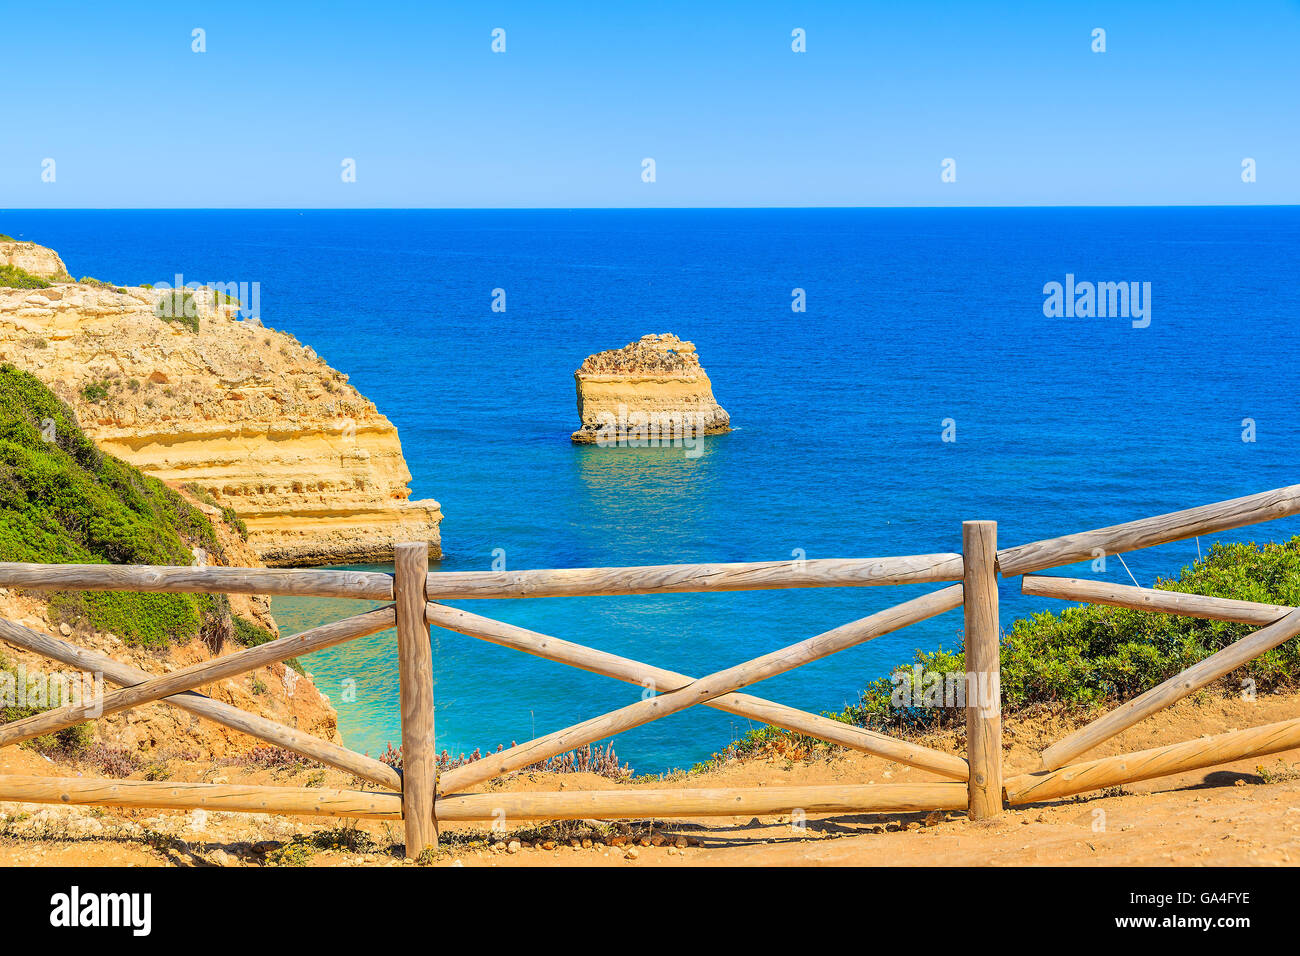 Wooden fence on cliff path on coast of Portugal in Algarve region near Praia de Marinha beach Stock Photo